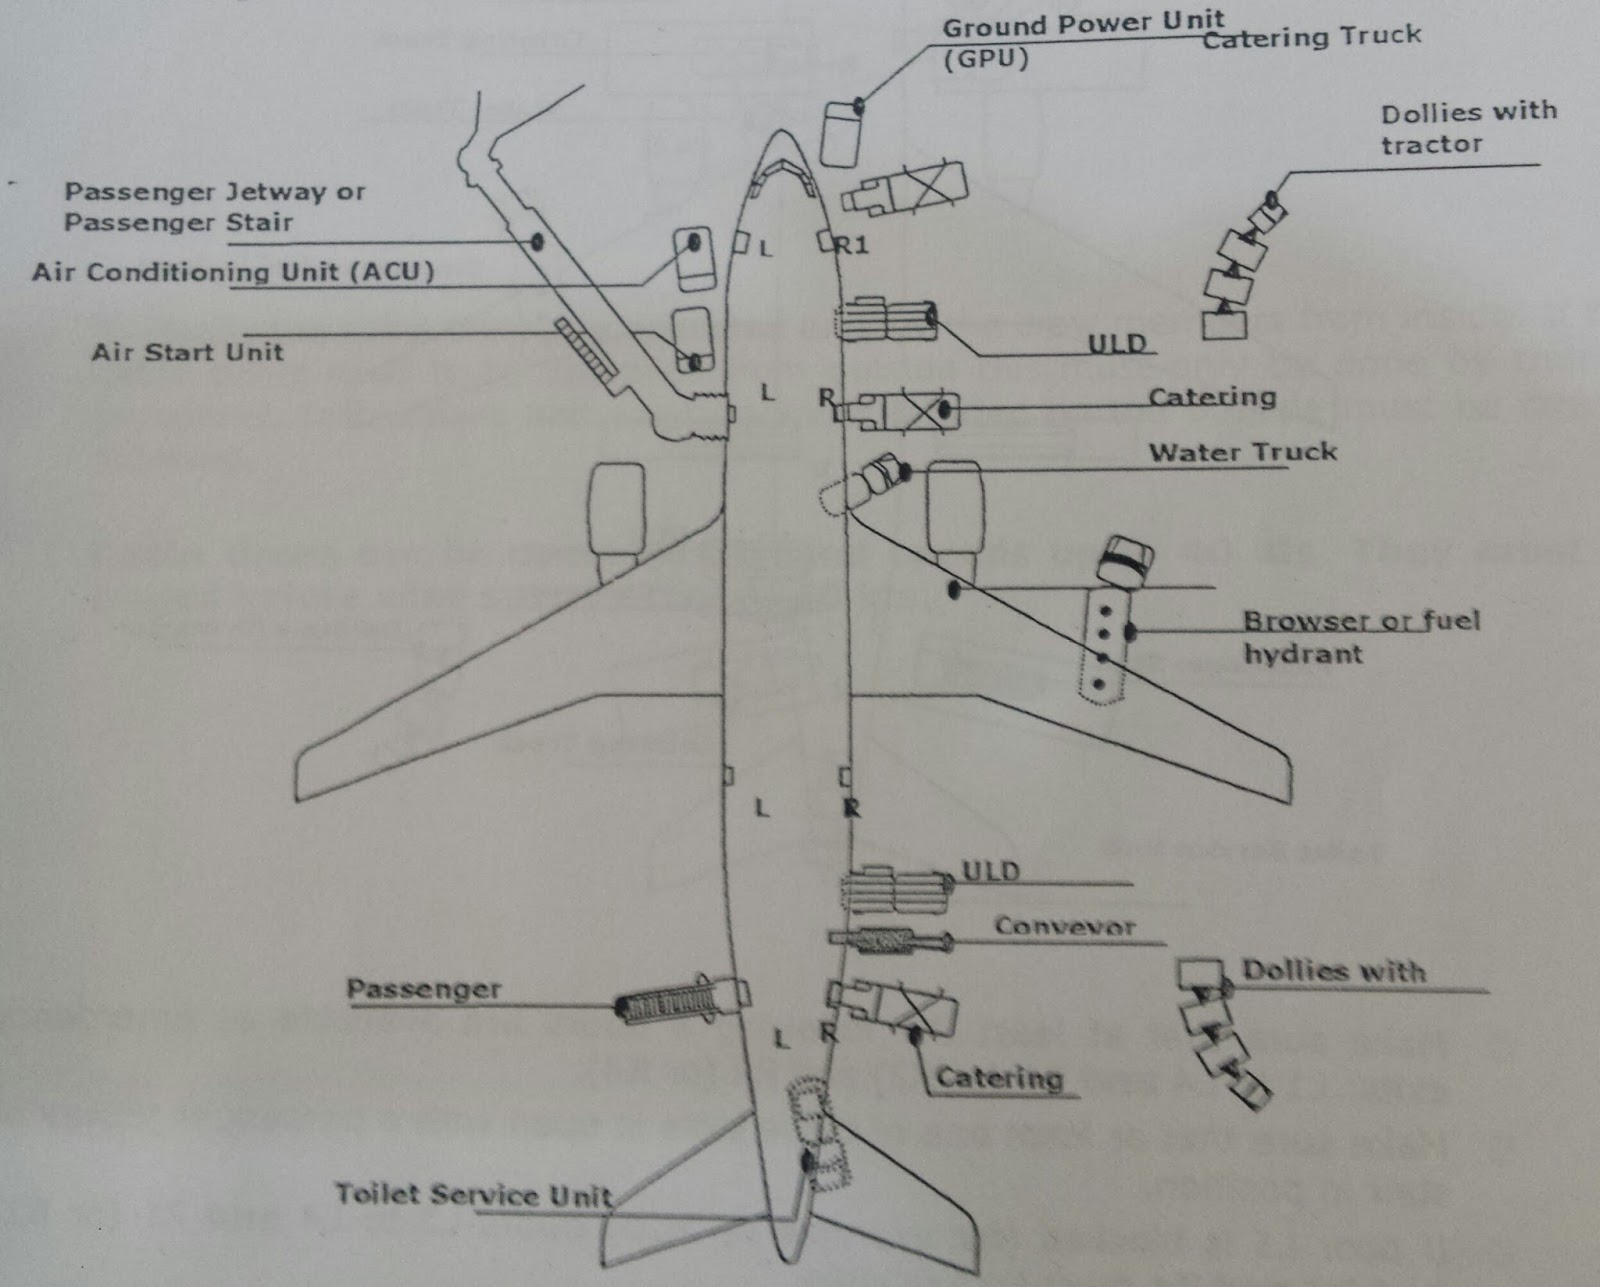 Aircraft Equipment Diagram Automotive Wiring Drawings Trendsetter Rh Nadeemhassan17 Blogspot Com Diagrams